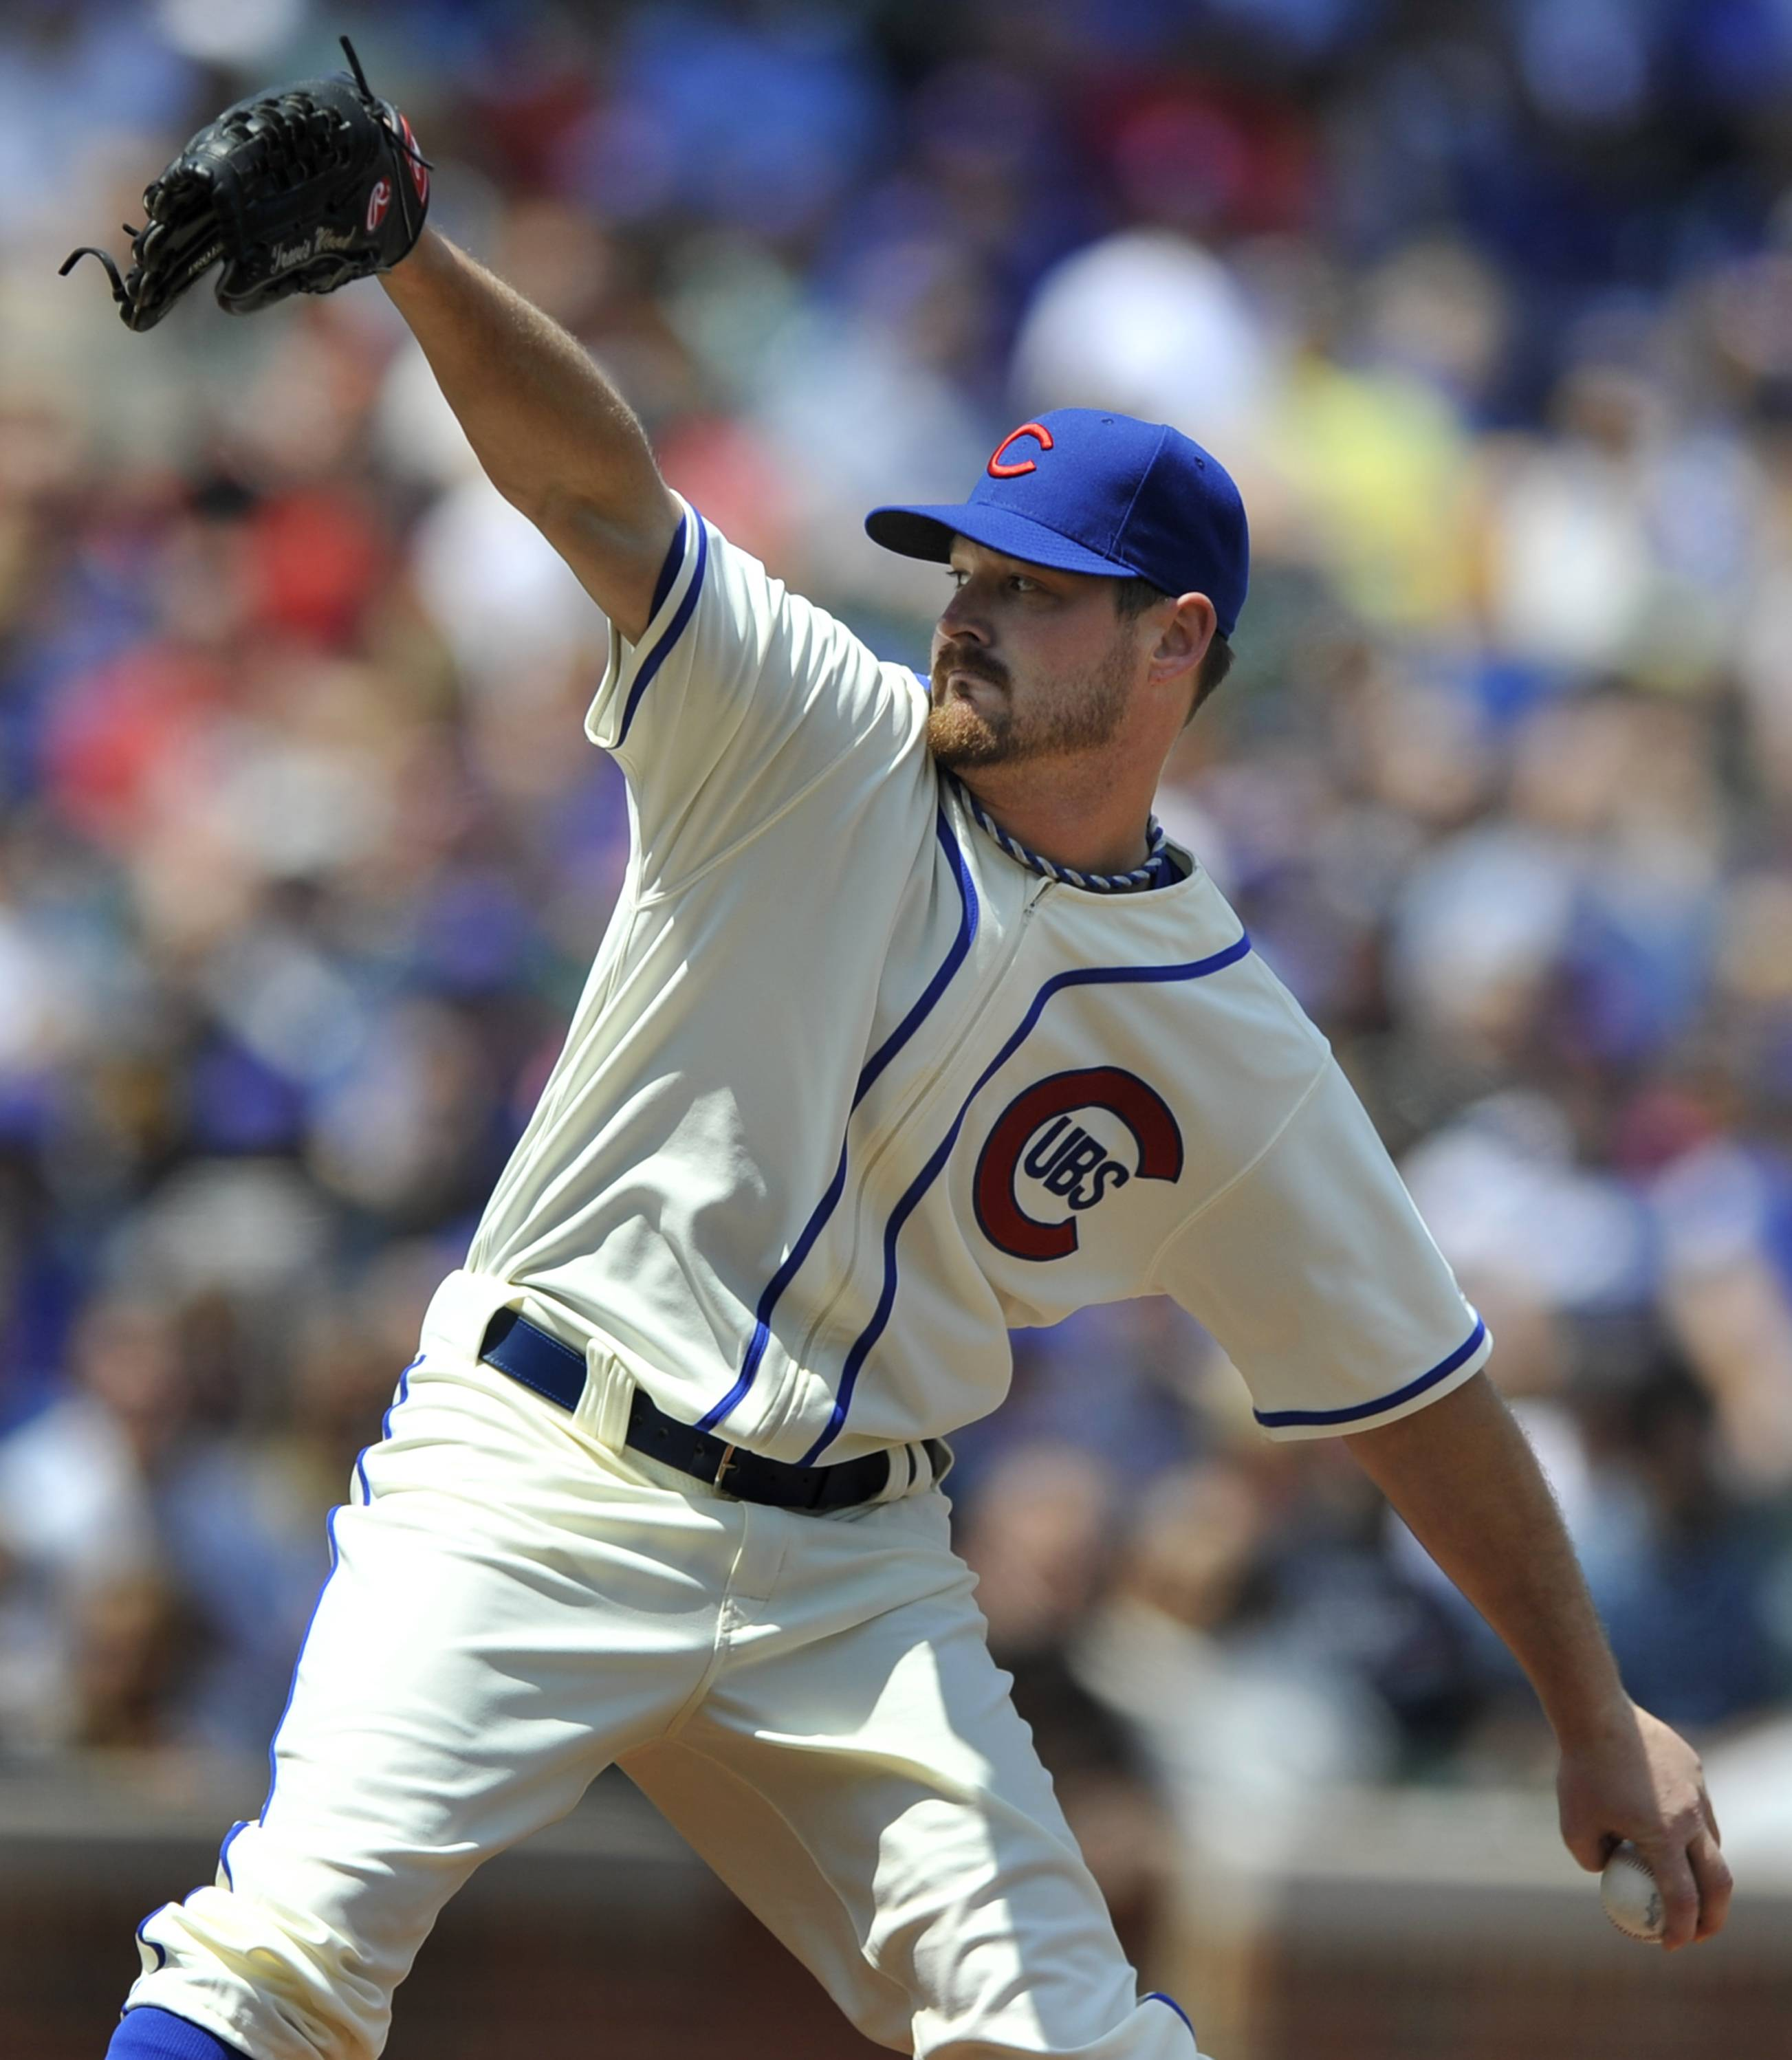 Cubs starter Travis Wood issued 3 walks in the first inning before finding his control. Wood evened his record at 4-4 and lowered his ERA from 4.91 to 4.61 as he allowed 2 runs and just 2 hits over 7 innings without another walk.